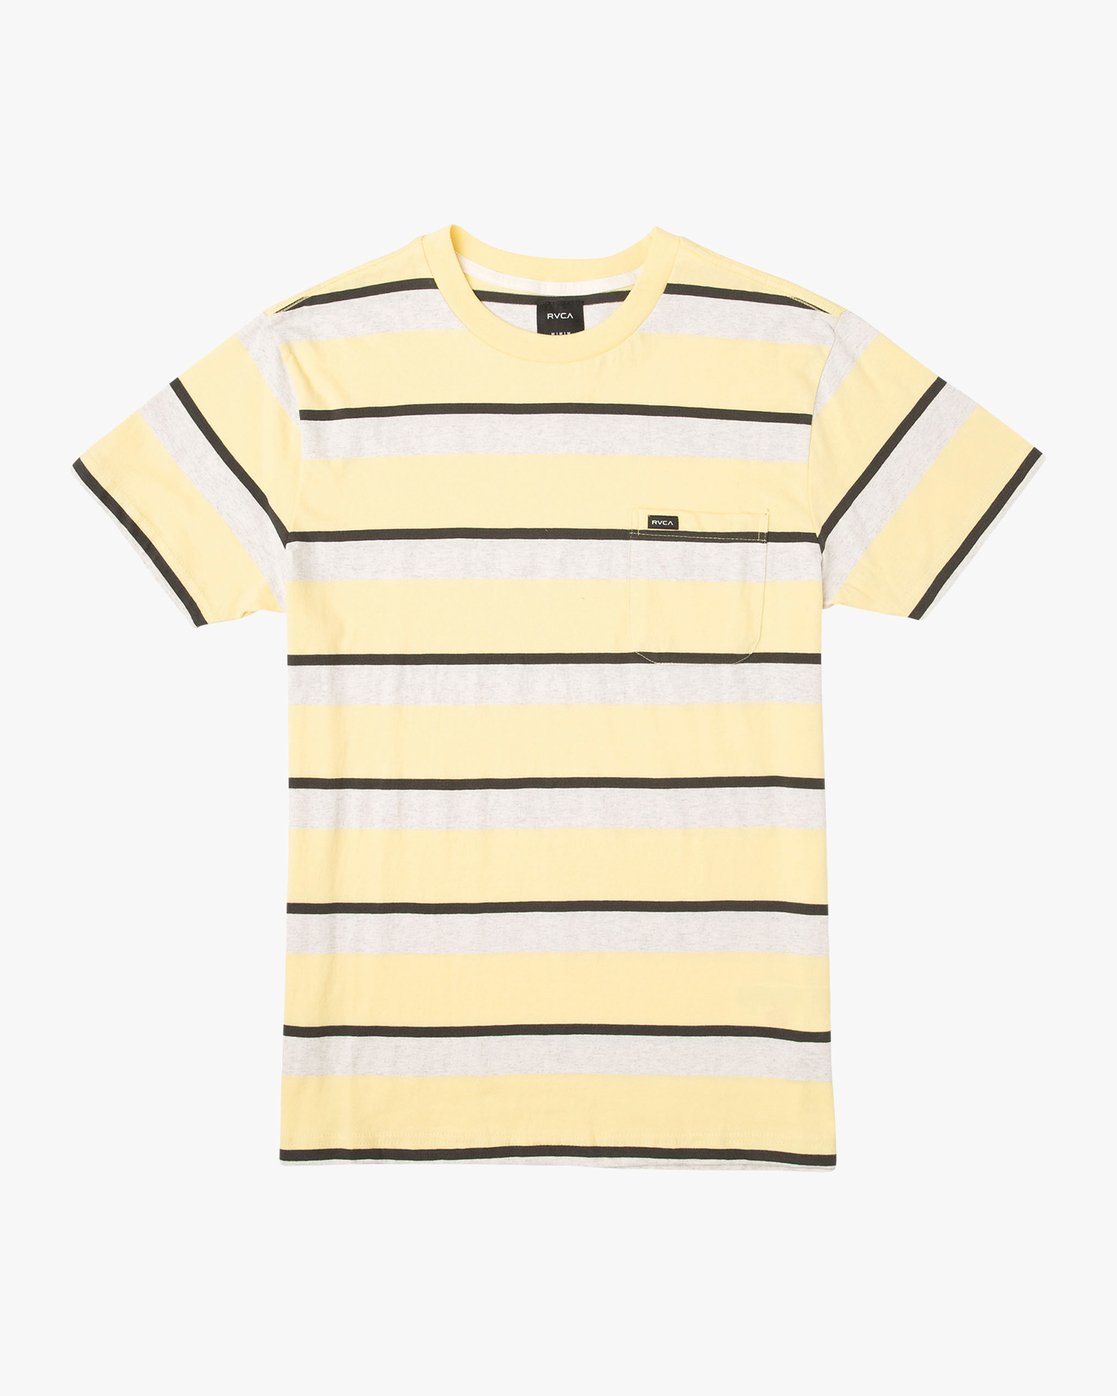 0 Fjords Stripe Knit Shirt Yellow M906URFS RVCA